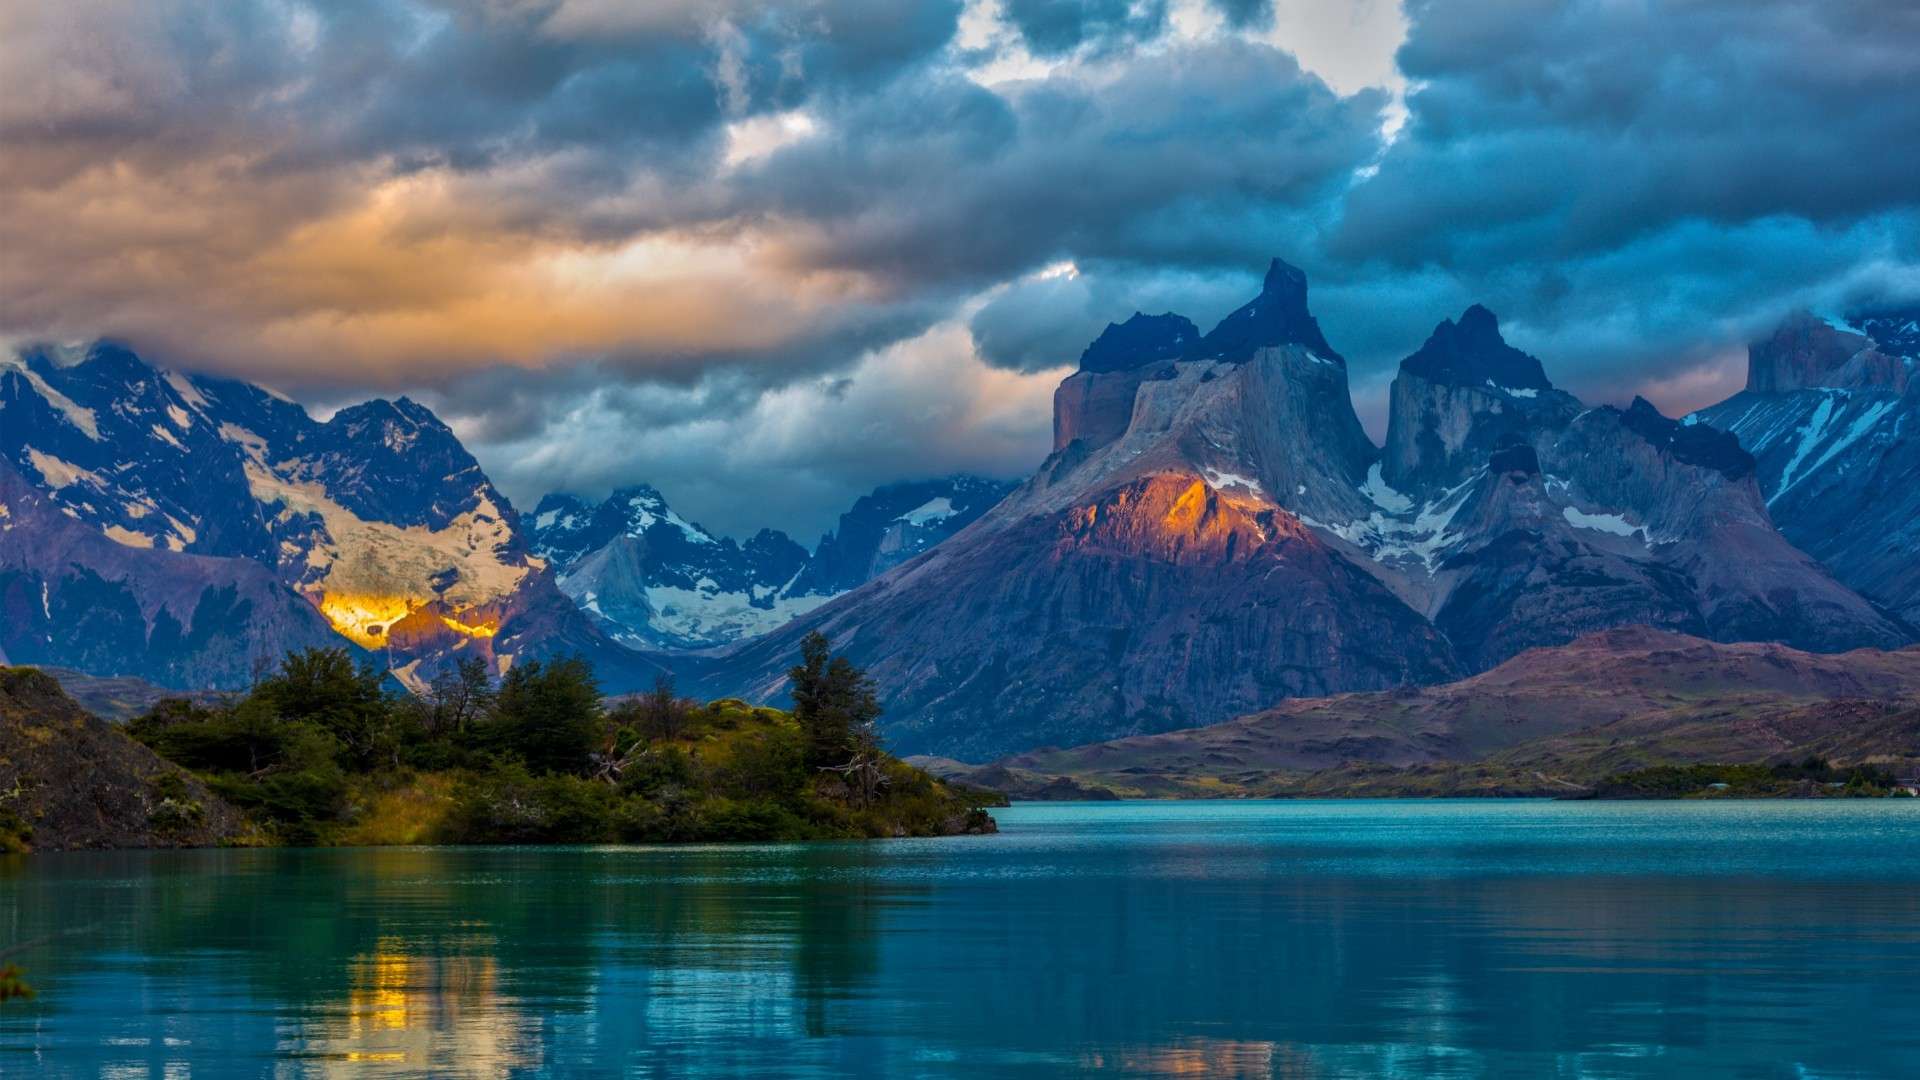 Preview wallpaper landscape, argentina, mountain, lake, patagonia, clouds,  nature 1920×1080